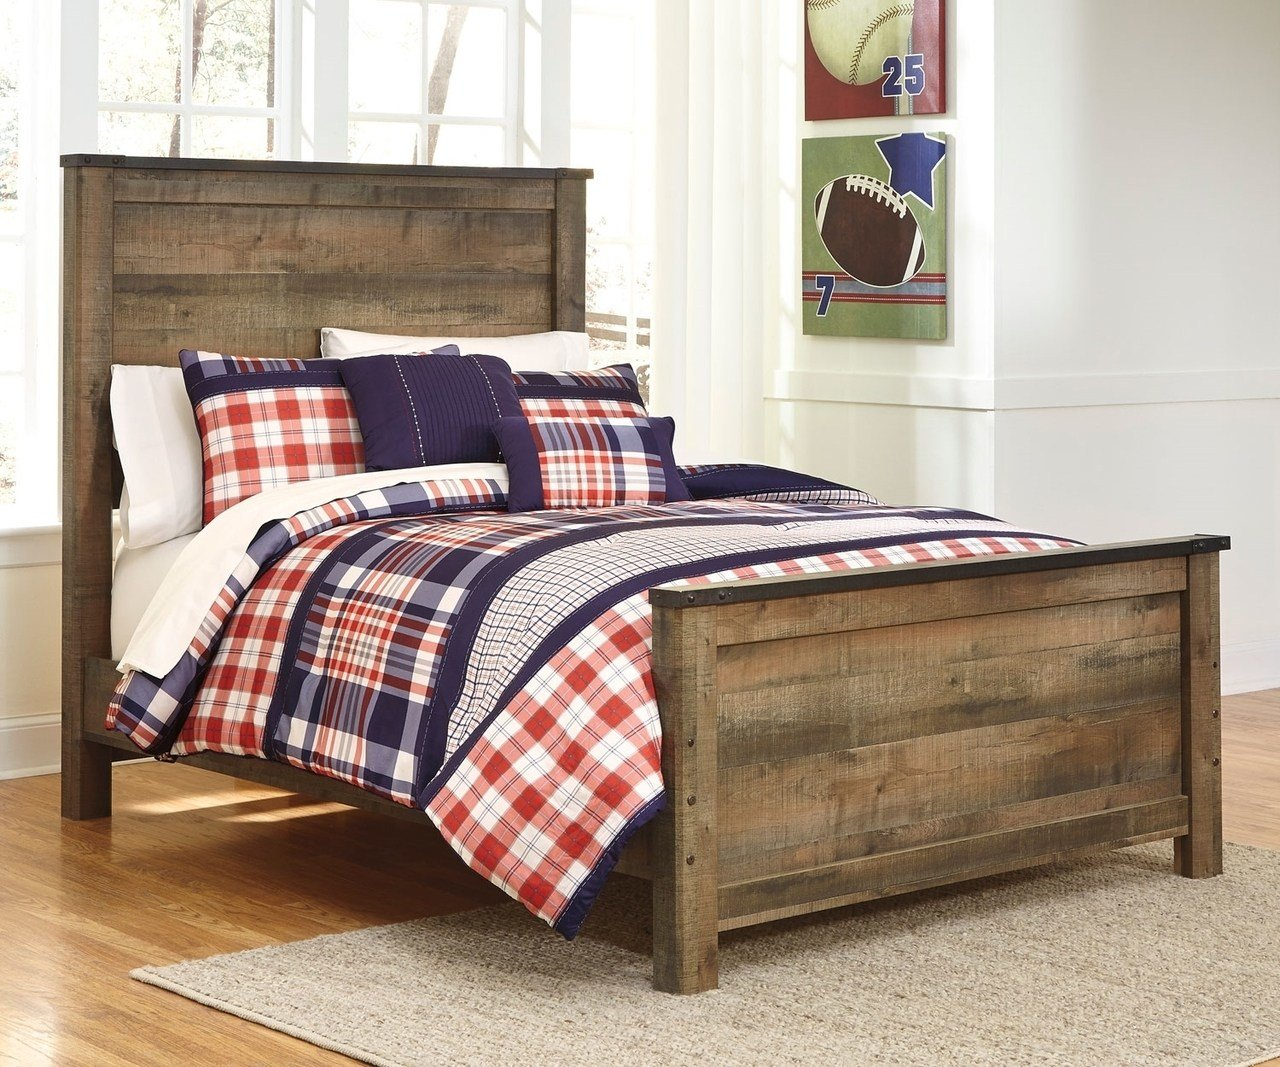 Best Trinell B446 Full Size Panel Bed Ashley Kids Furniture Boys And Girls Bedroom Furniture With Pictures